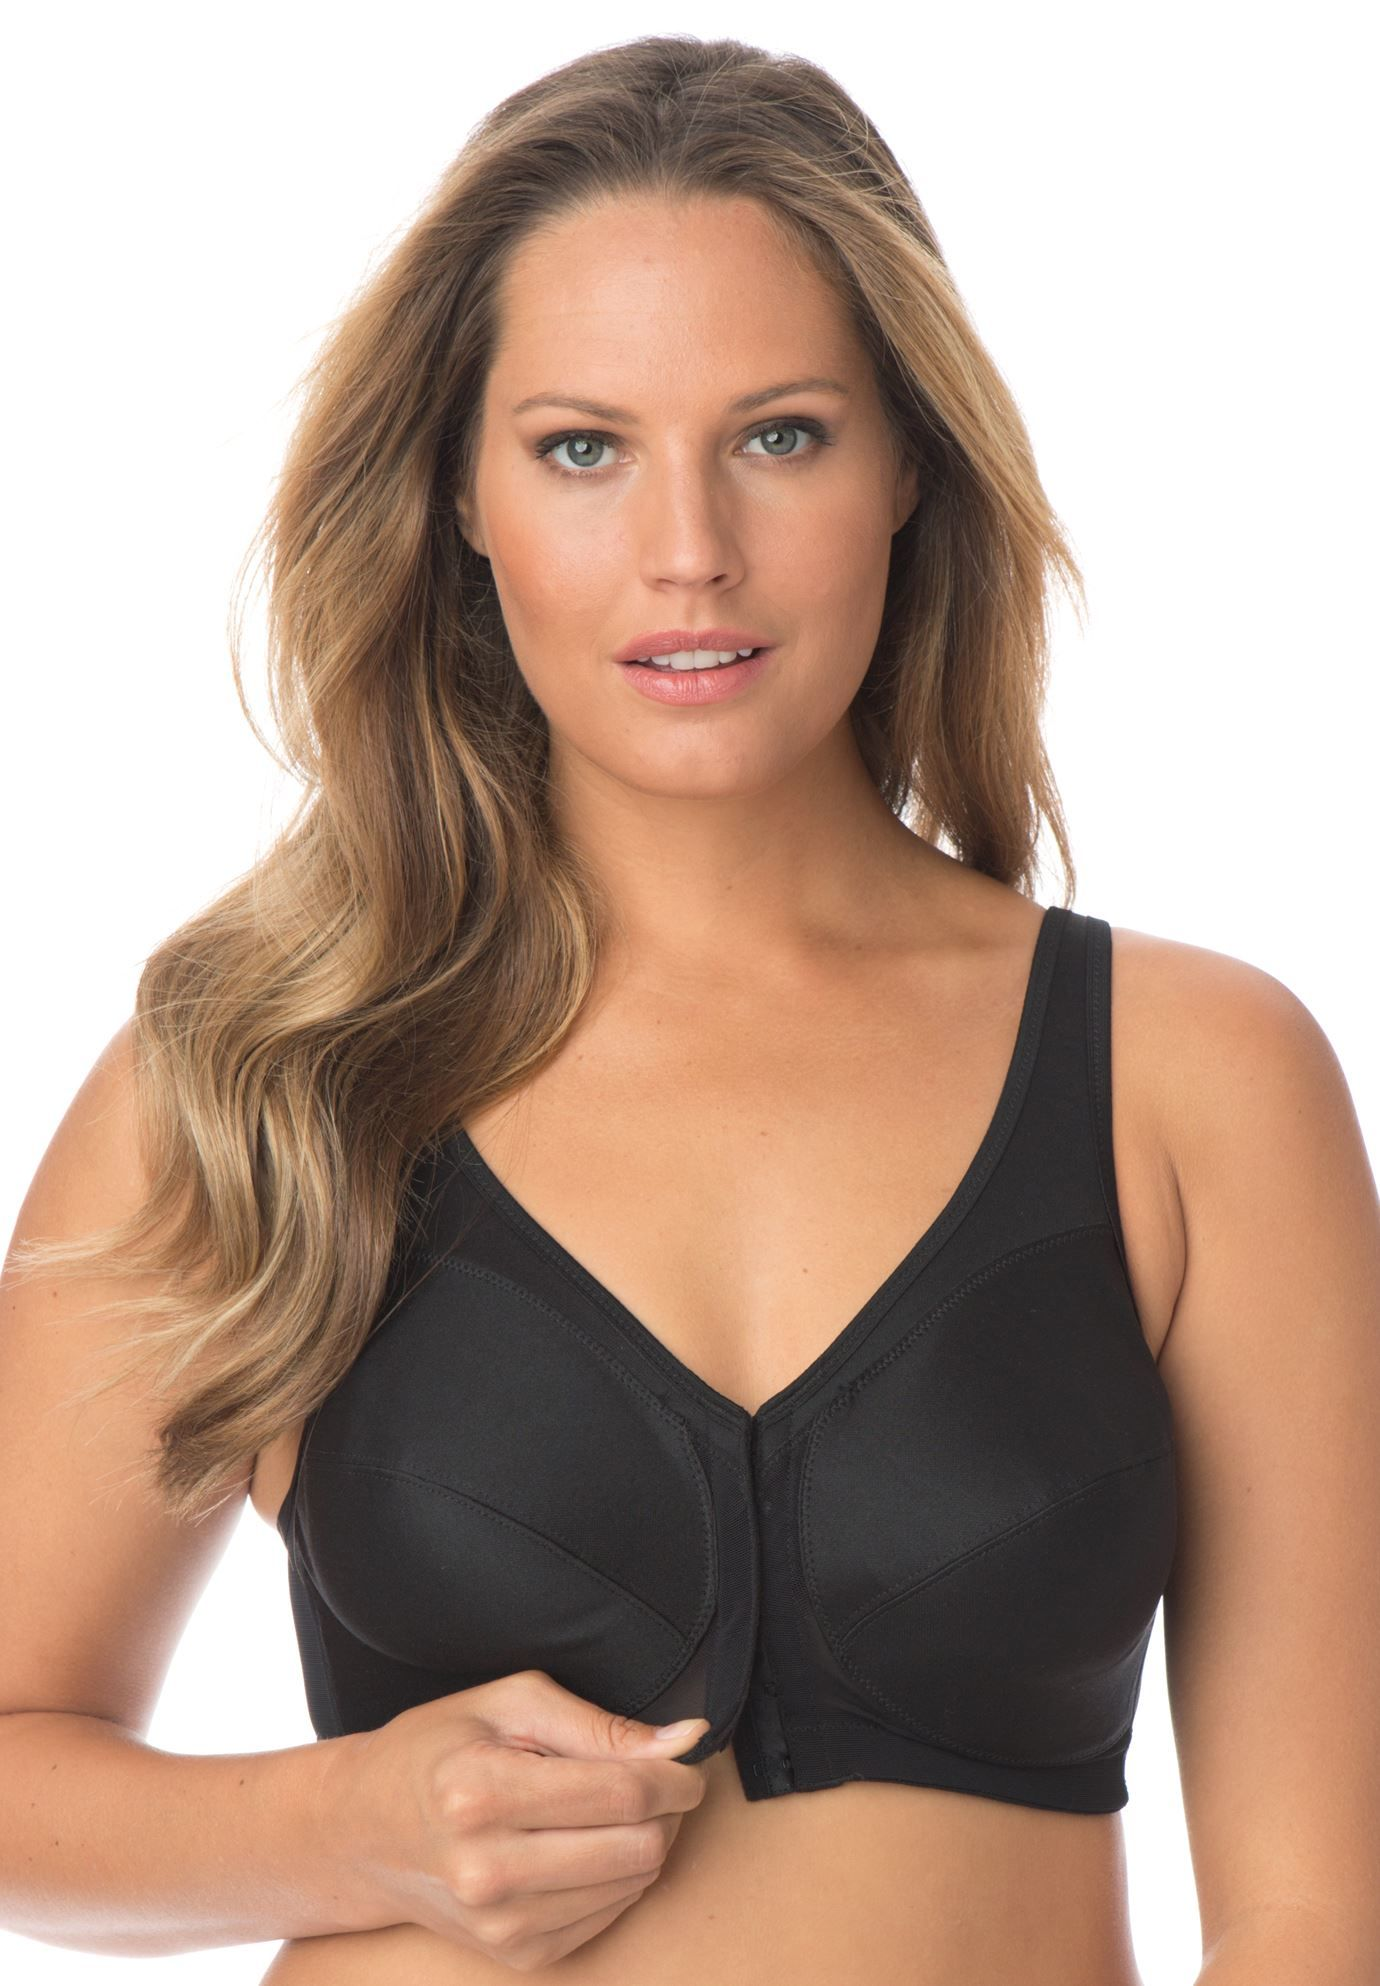 40b4ad48b Magic Lift Plus Front Hook Posture Bra by Glamorise - Women s Plus Size  Clothing